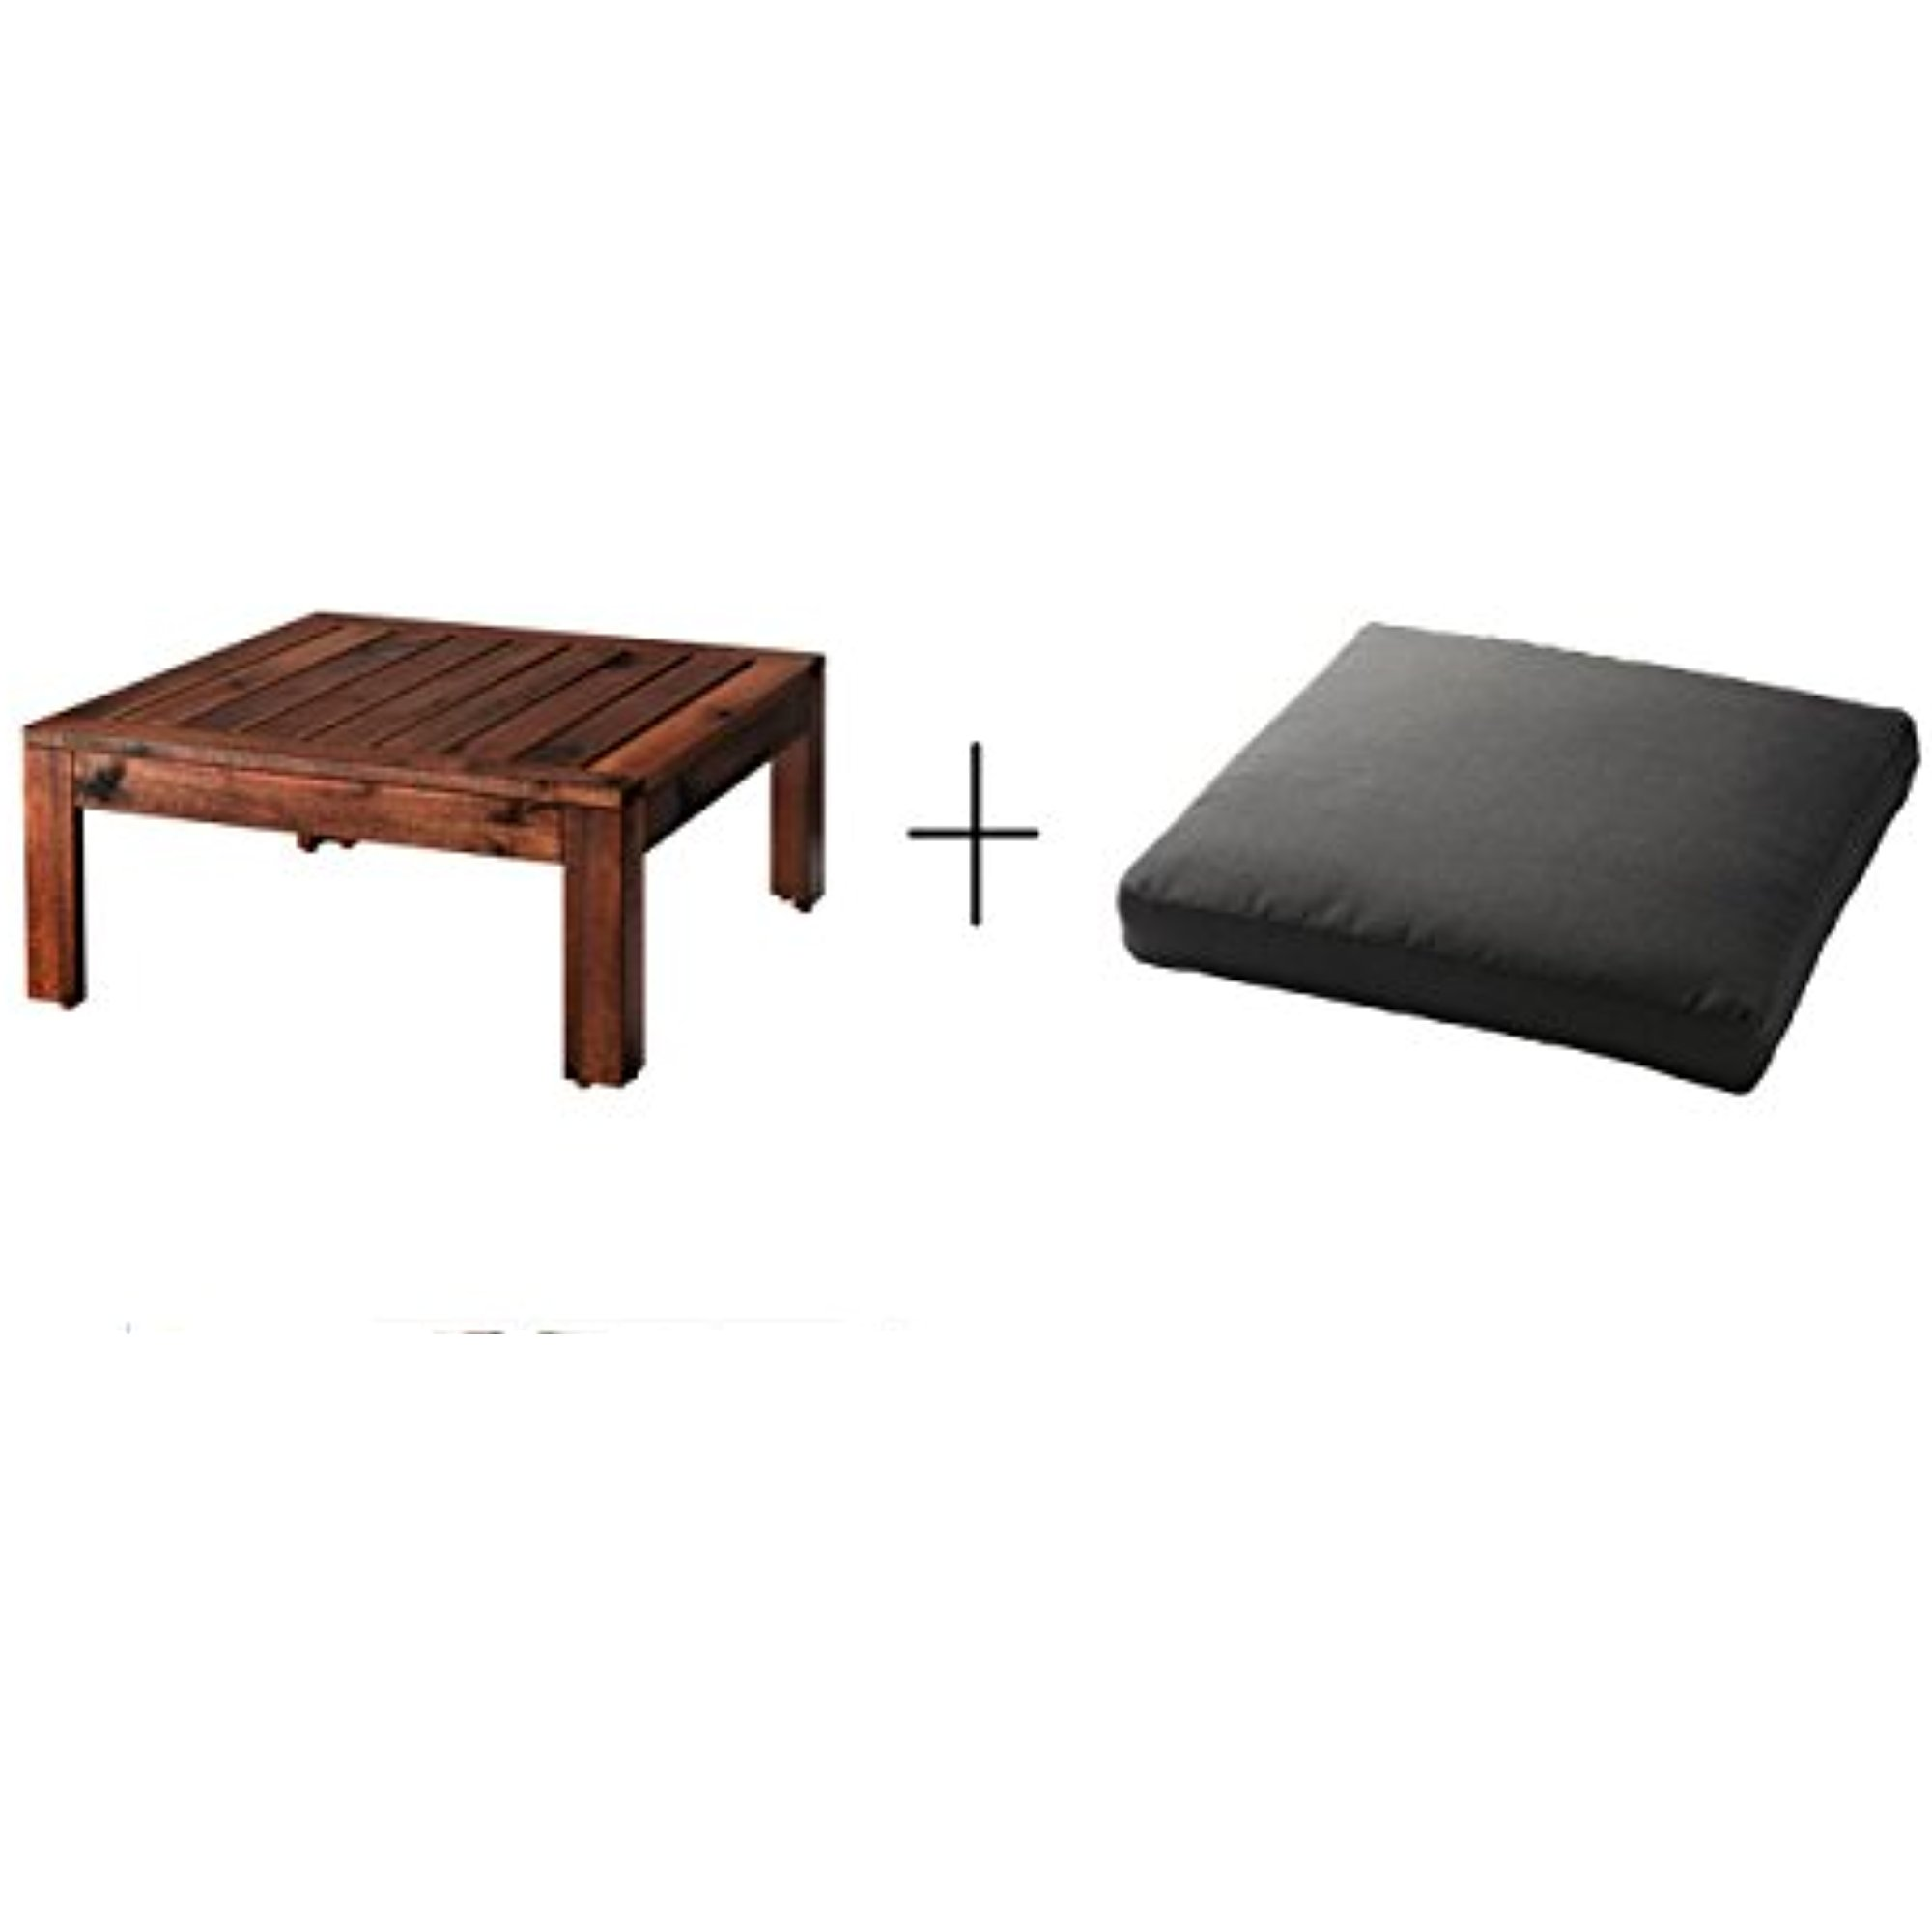 Ikea Stool Ikea Table Stool Section Outdoor Brown Stained Brown Seat Pad Outdoor Black 24x24